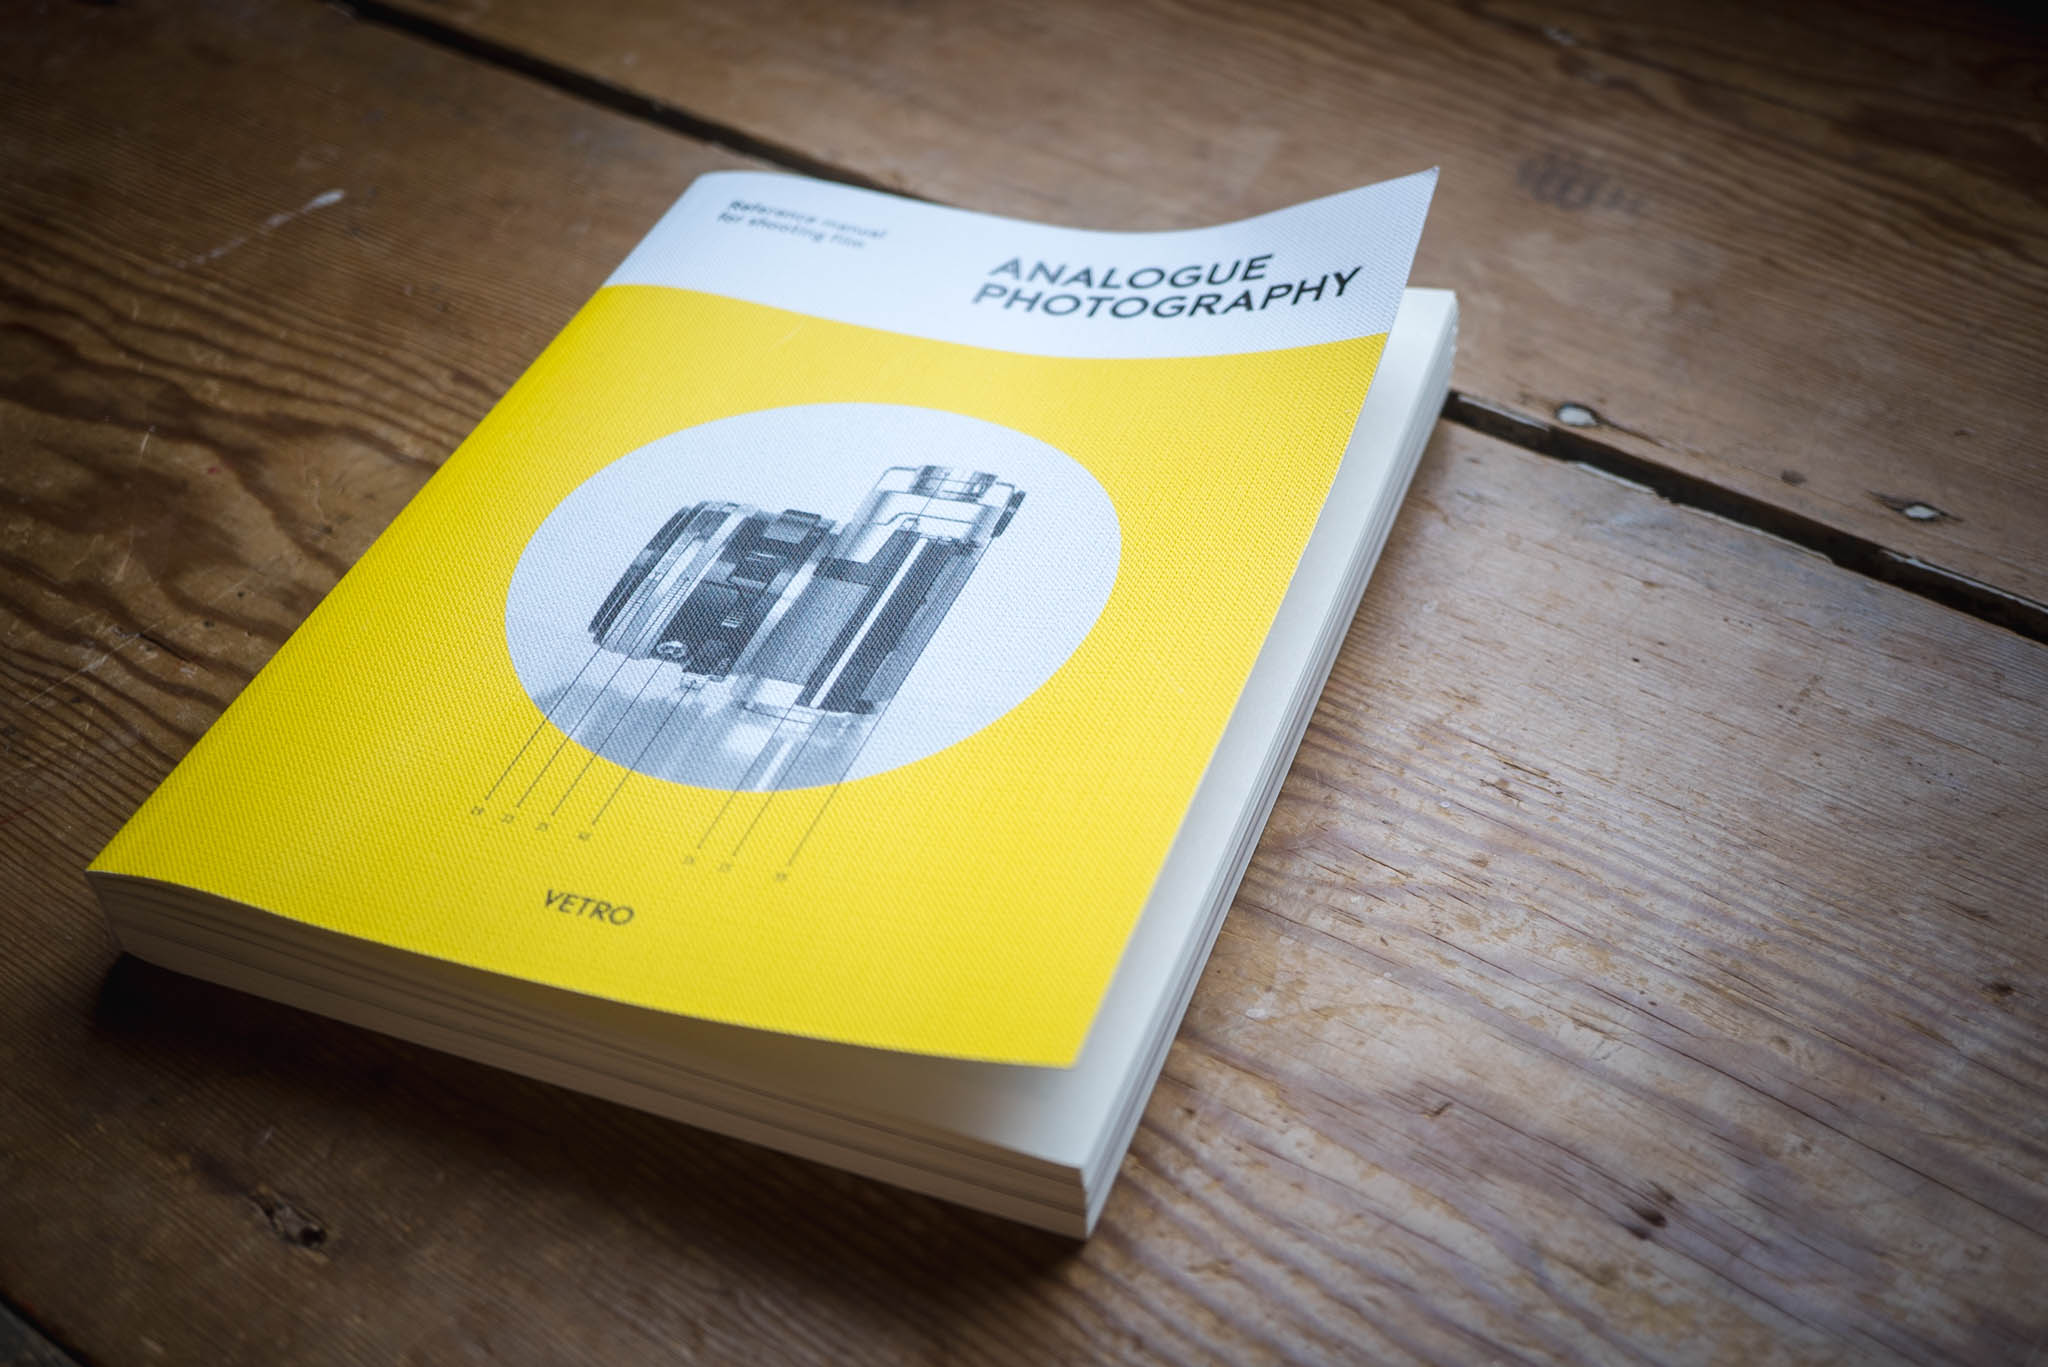 'Analogue Photography – Reference Manual for Shooting Film' – a Strong Recommendation